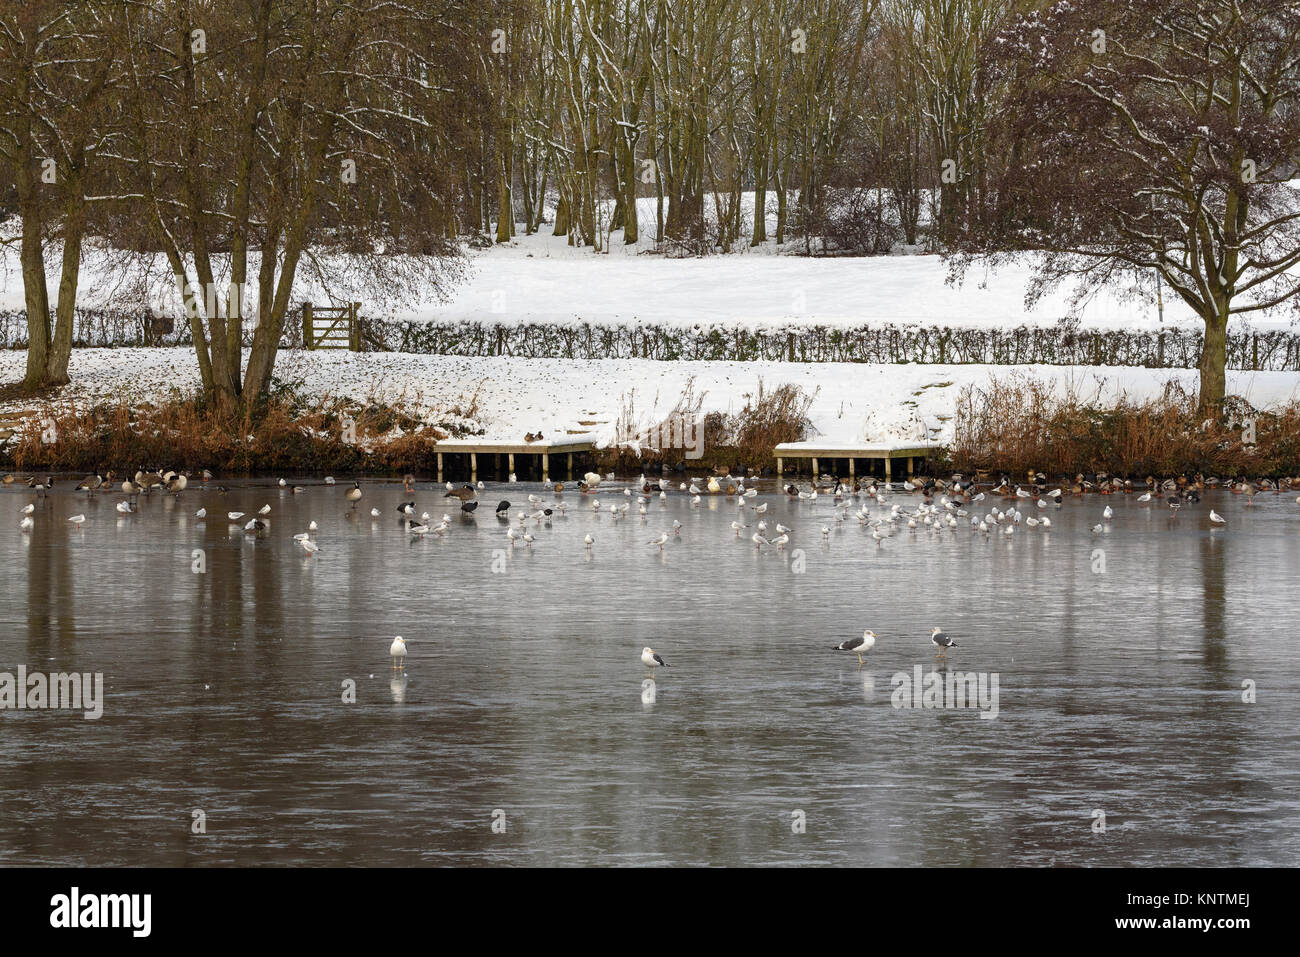 A wintery, snowy view of the icy Arrow Valley Lake, with the ducks